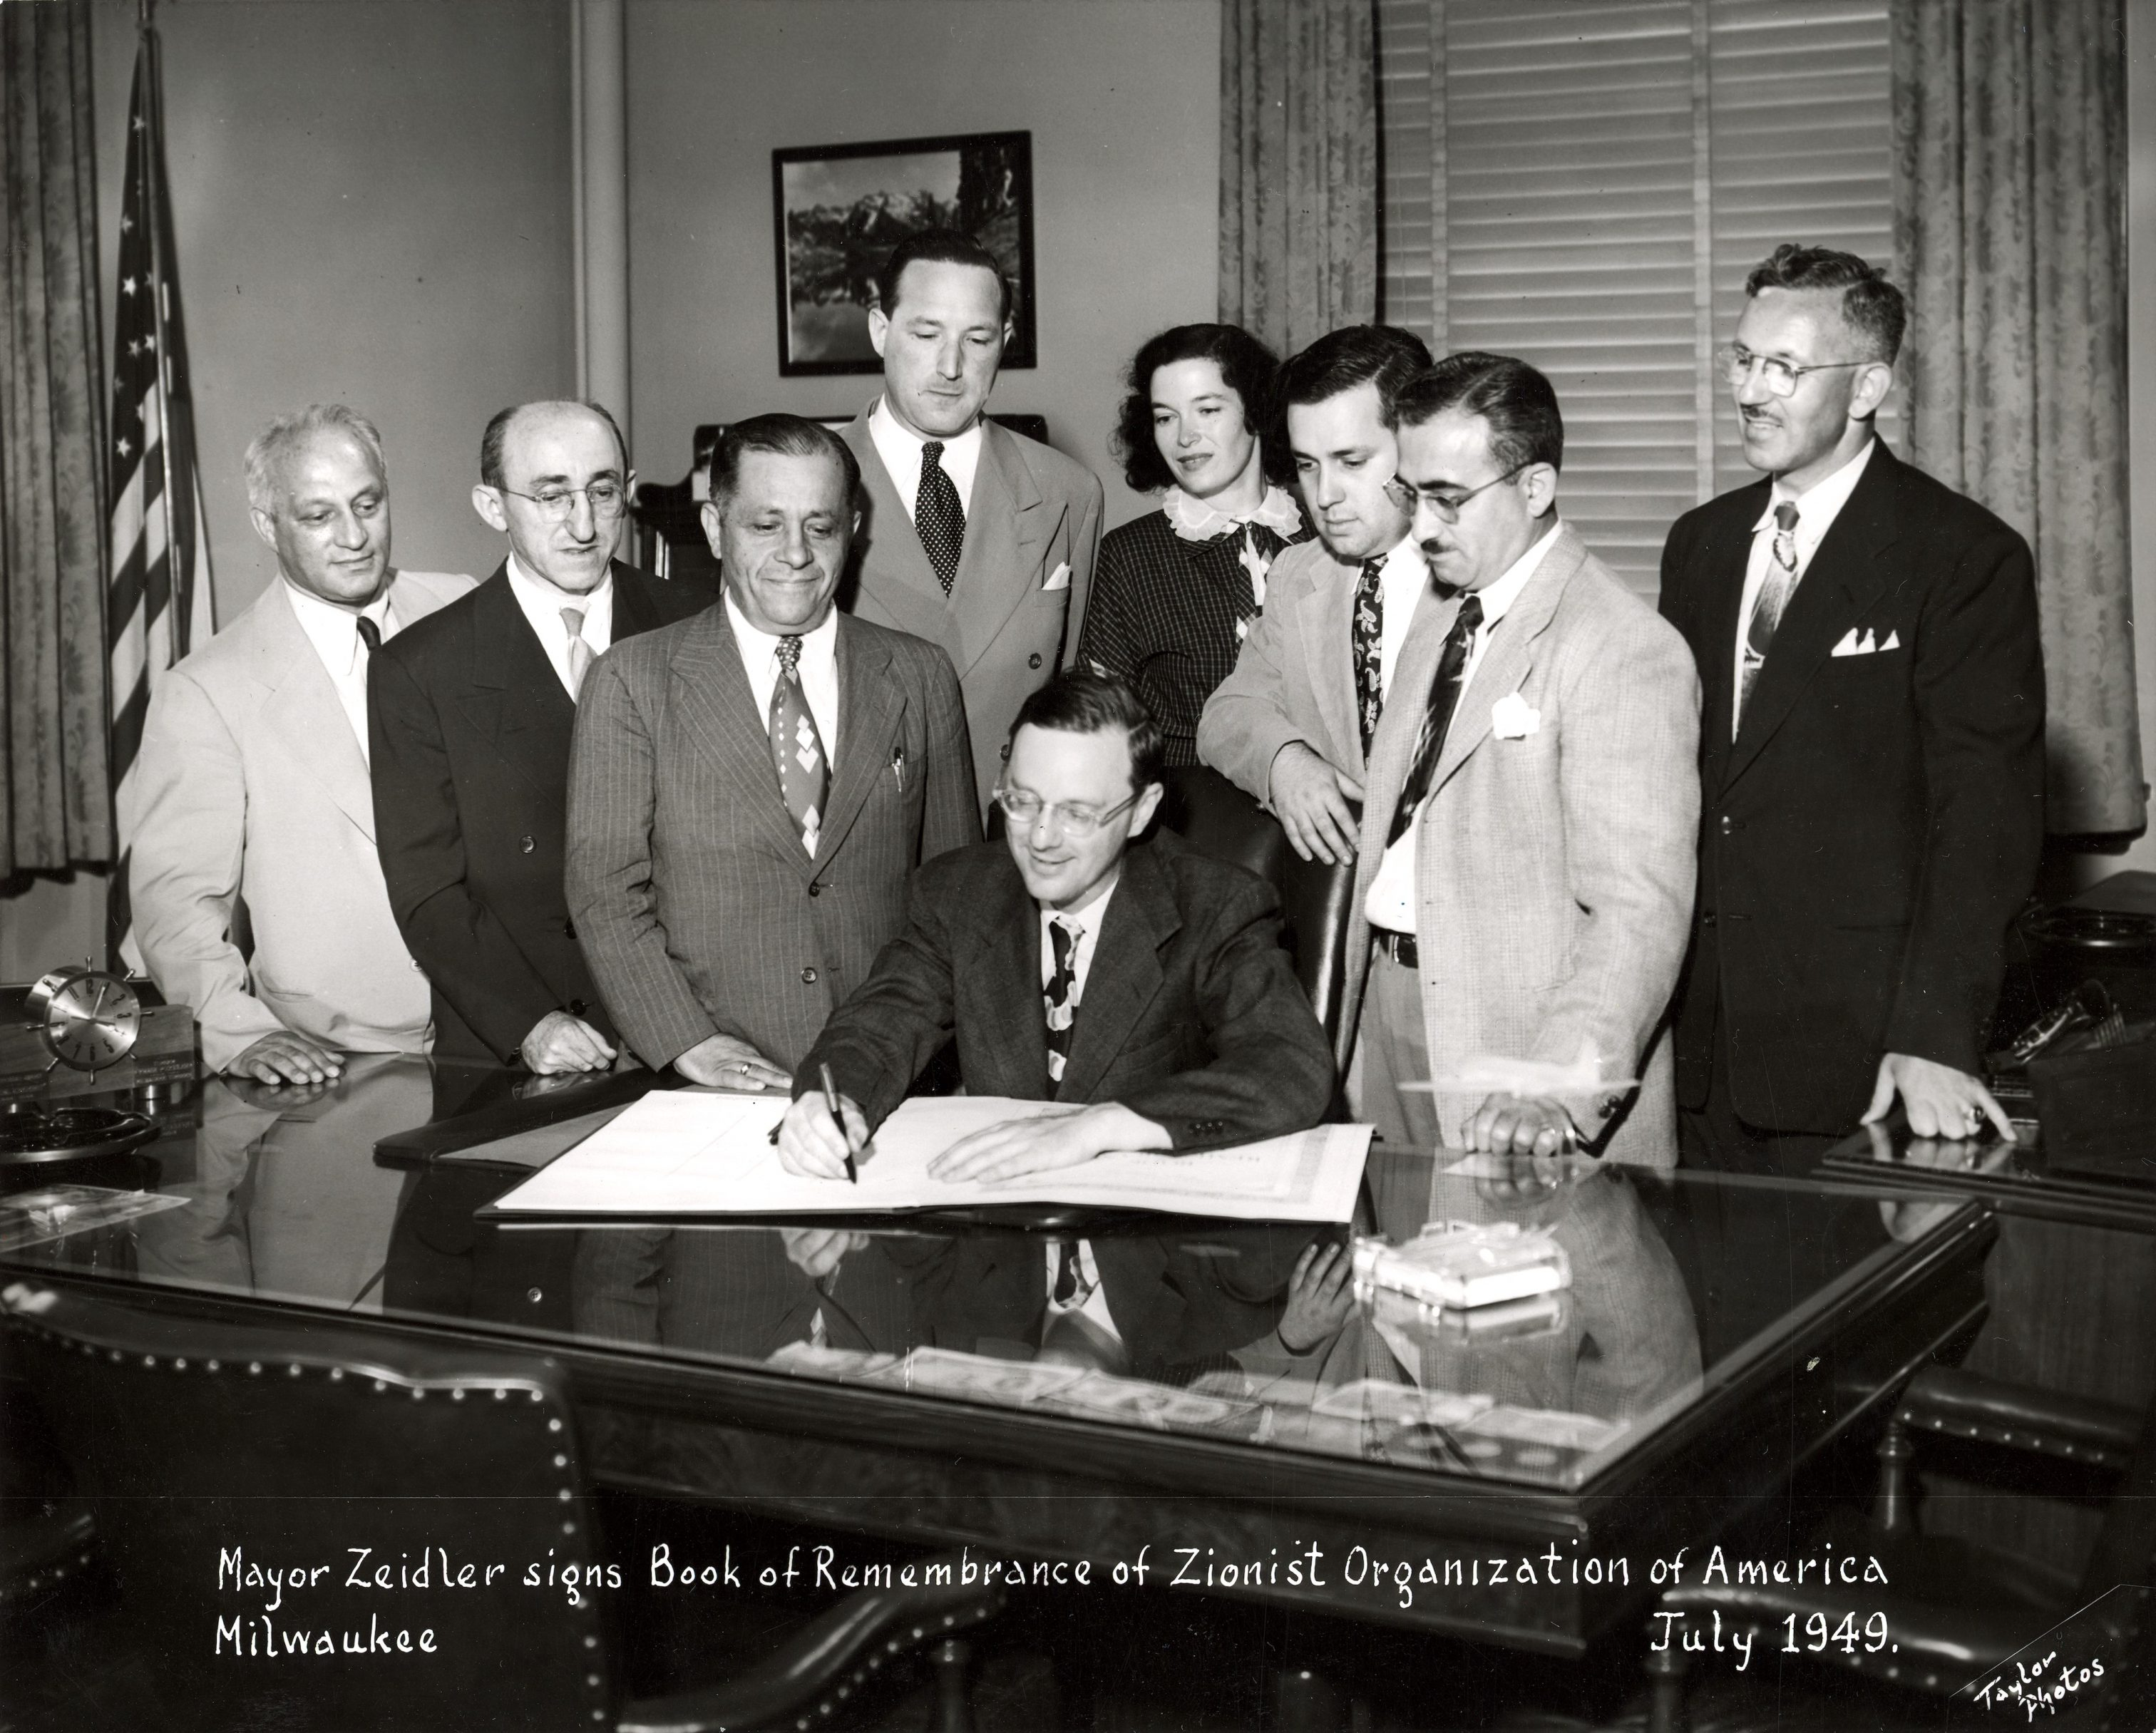 Mayor Frank Zeidler signs a Book of Remembrance while members of the Zionist Organization of America look on in this 1949 photograph.